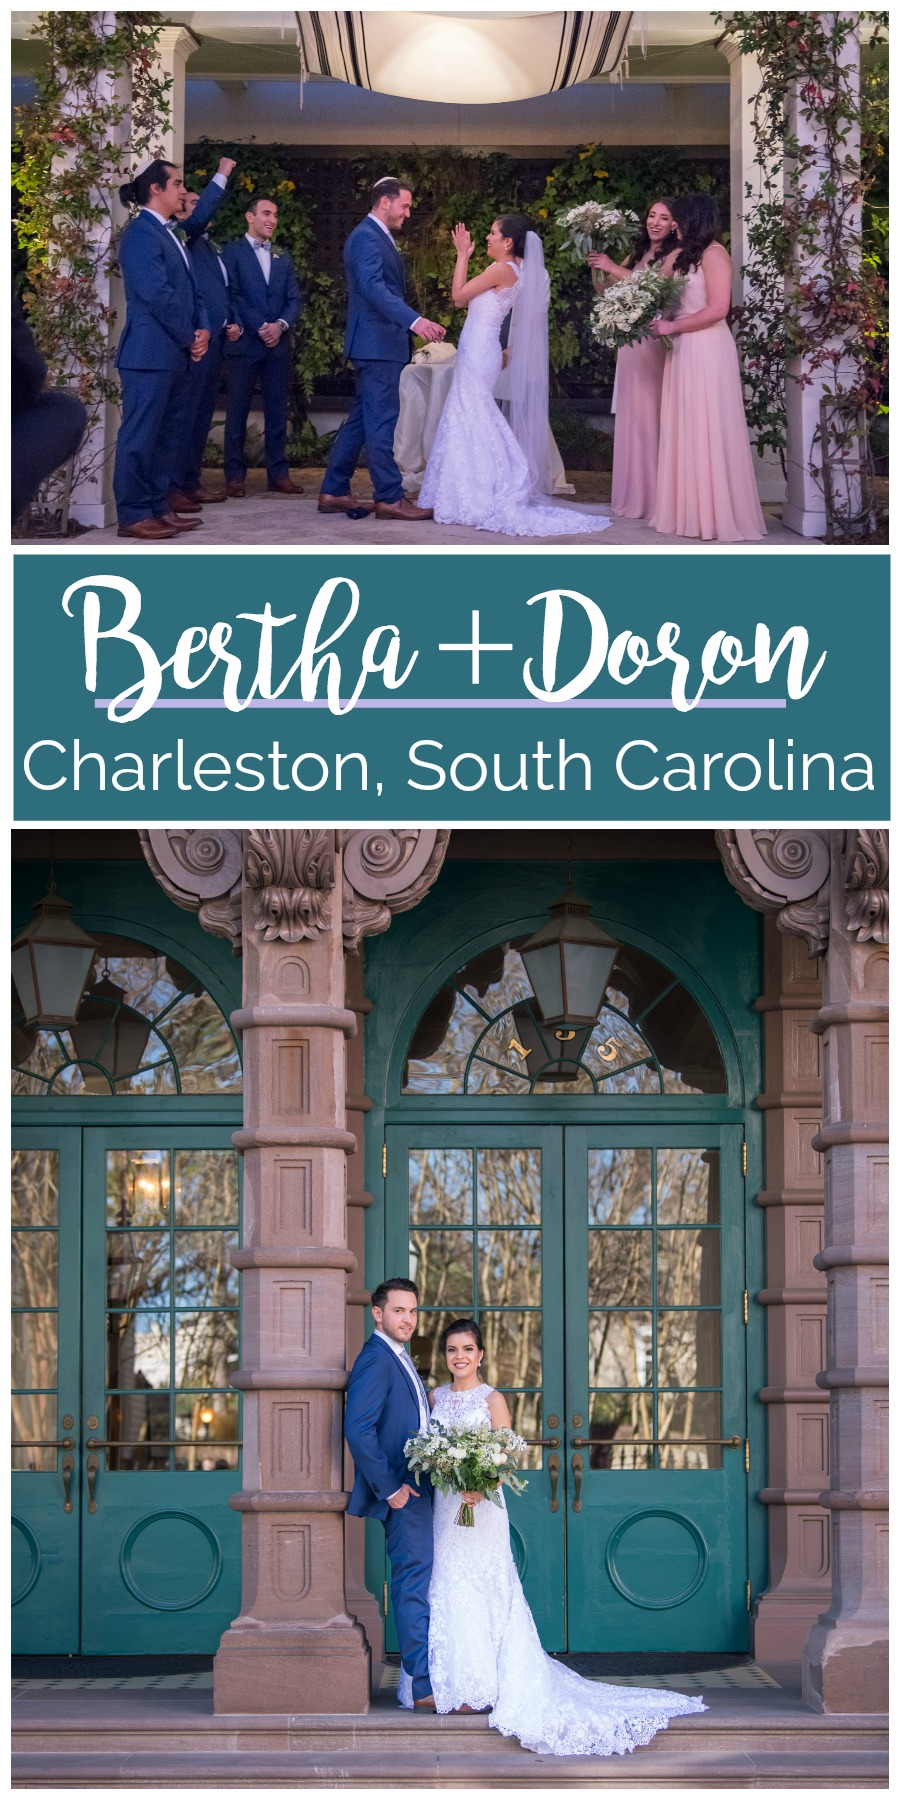 Bertha + Doron: Modern Jewish Wedding at Cannon Green, Charleston, South Carolina | Palmetto State Weddings | Photography by Molly Joseph Photography